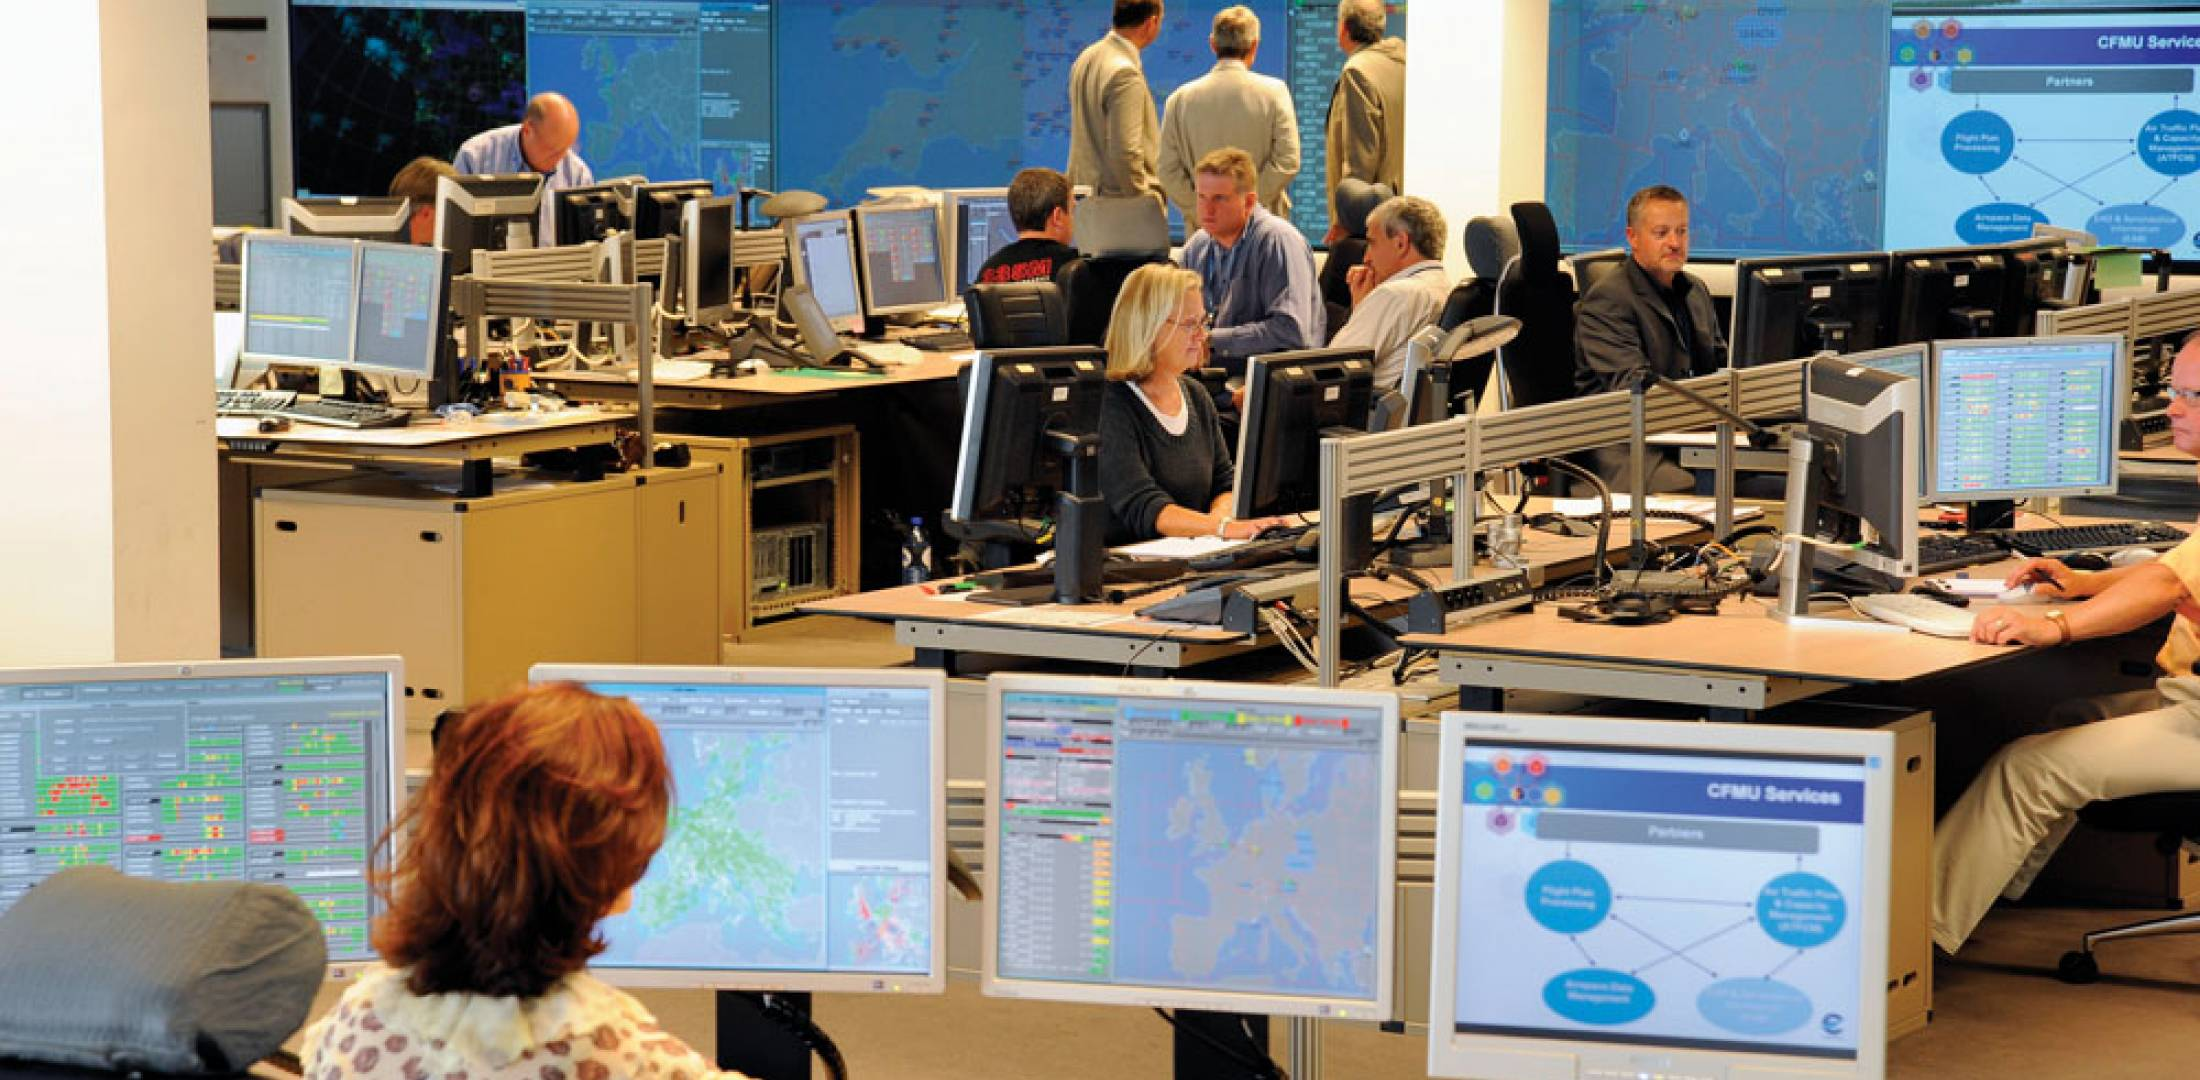 Eurocontrol's network manager operations center in Brussels is based on the concept of a central flow management unit. It has the responsibilty to coordinate and manage flight planning and airspace data, as well as air traffic in the 39 ECAC member states.